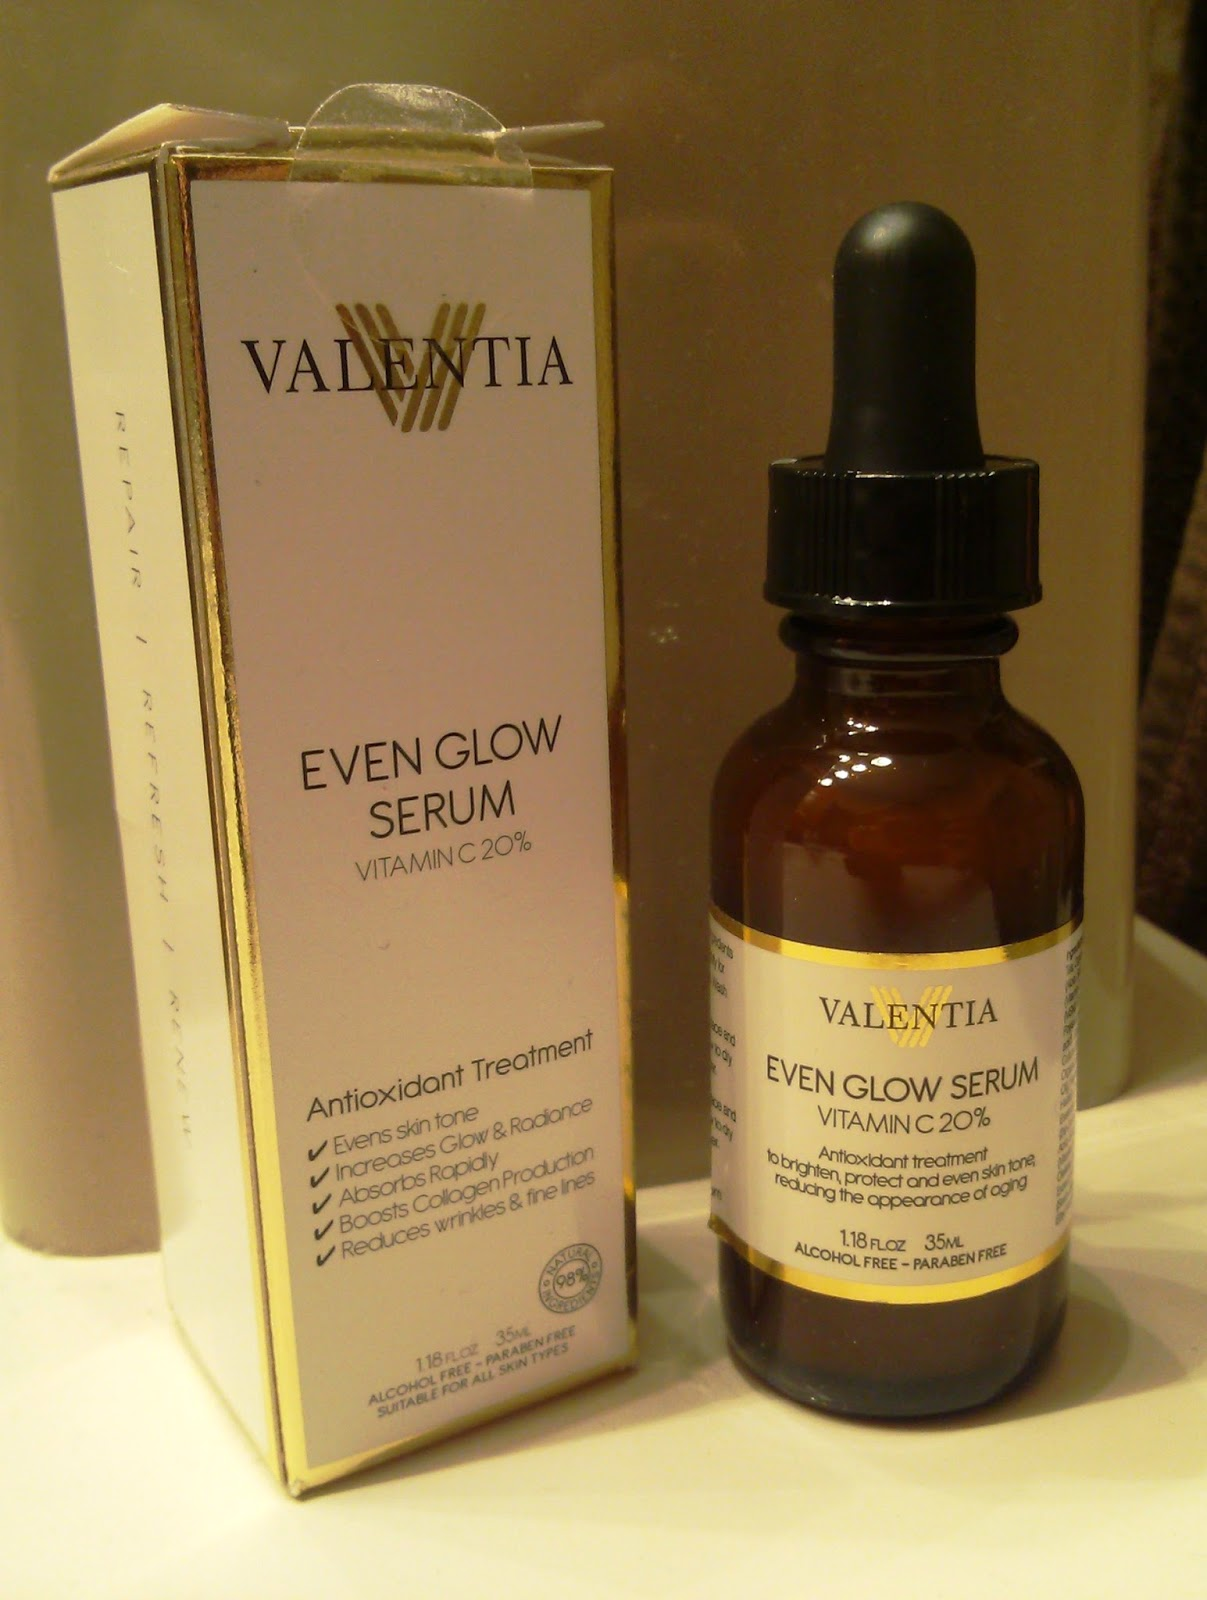 Valentia Even Glow Serum - Antioxidant Skin Treatment Review